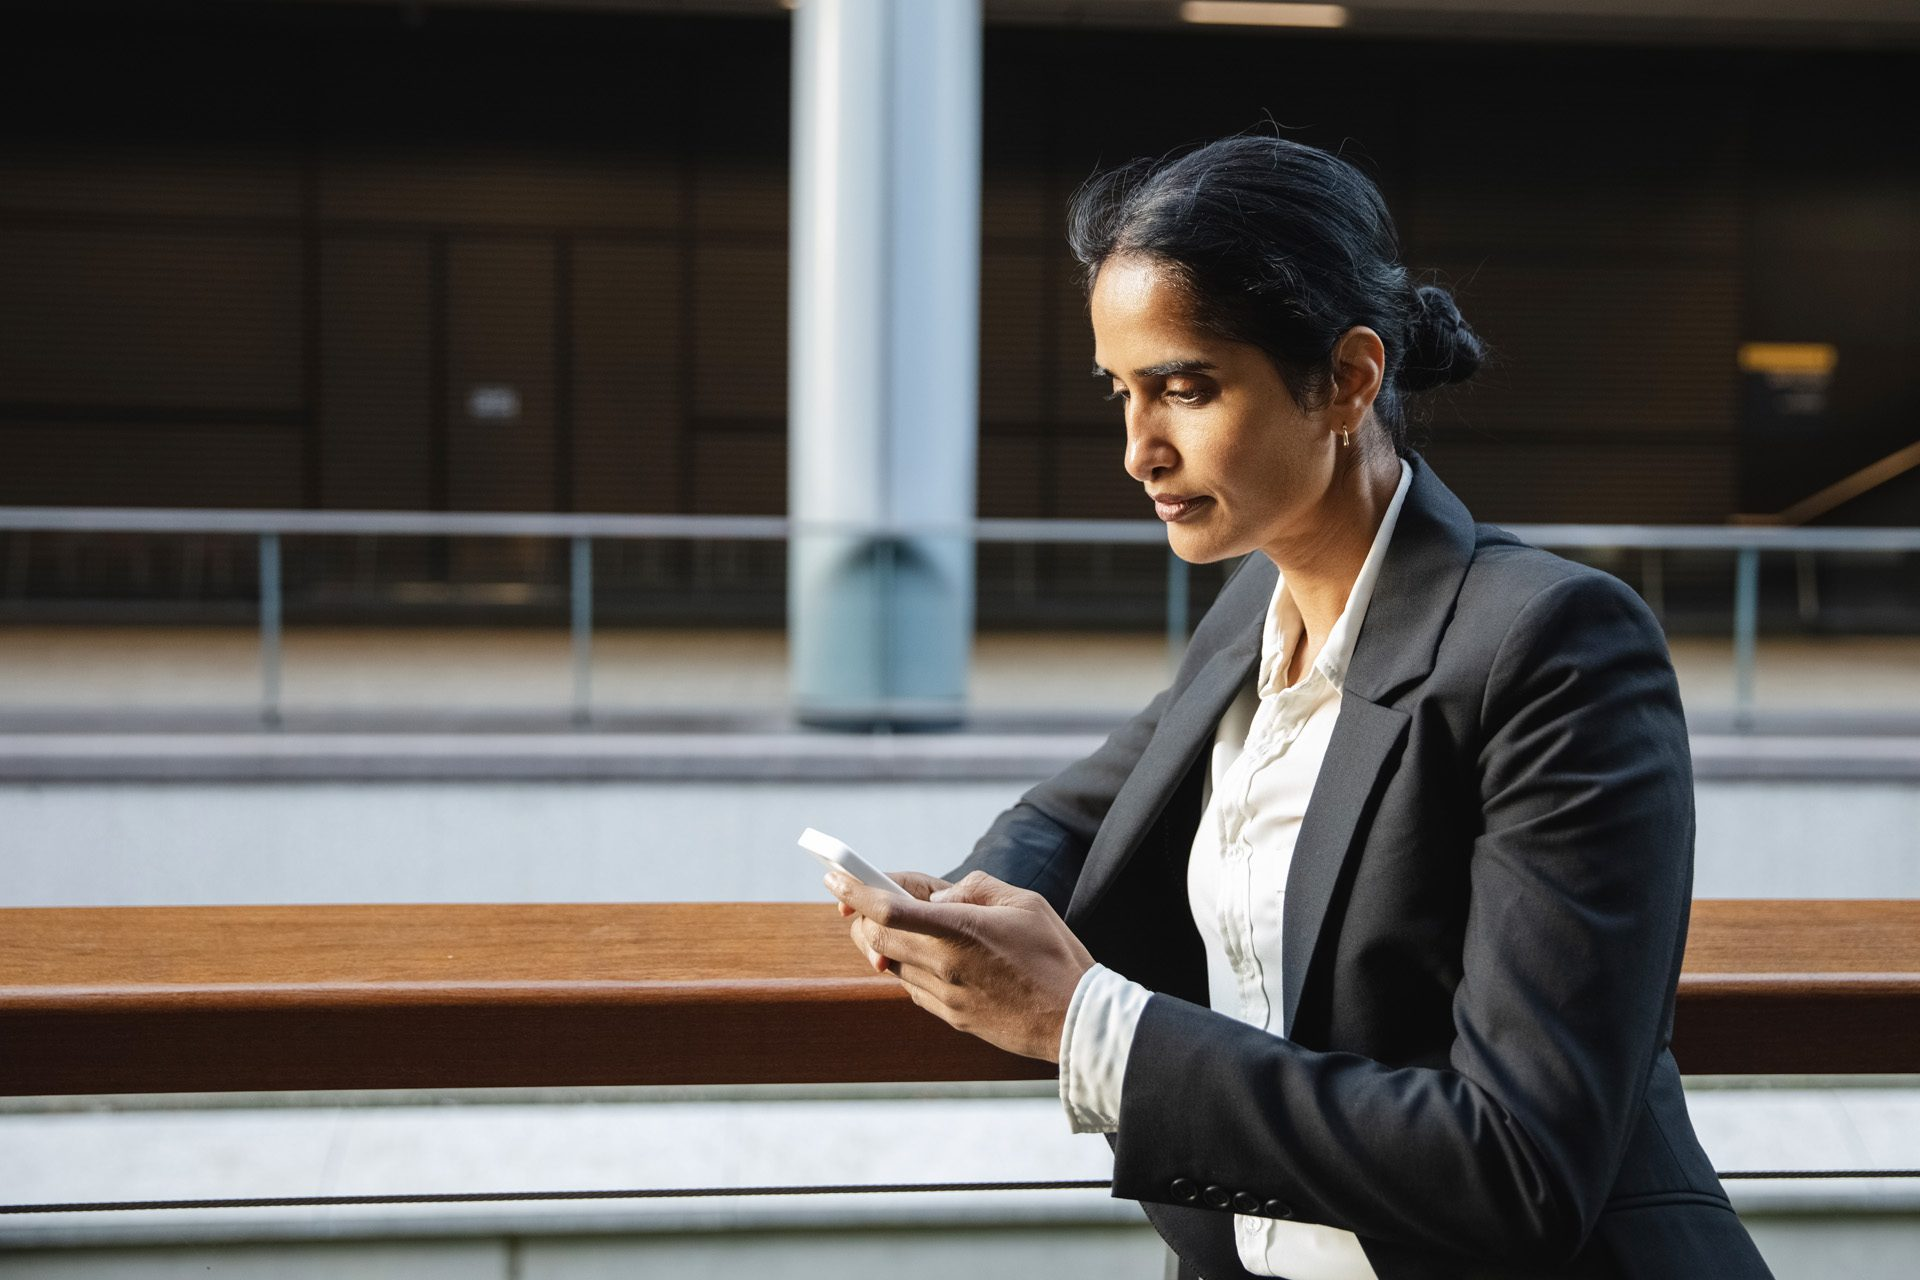 Businesswoman in dark suit using smartphone